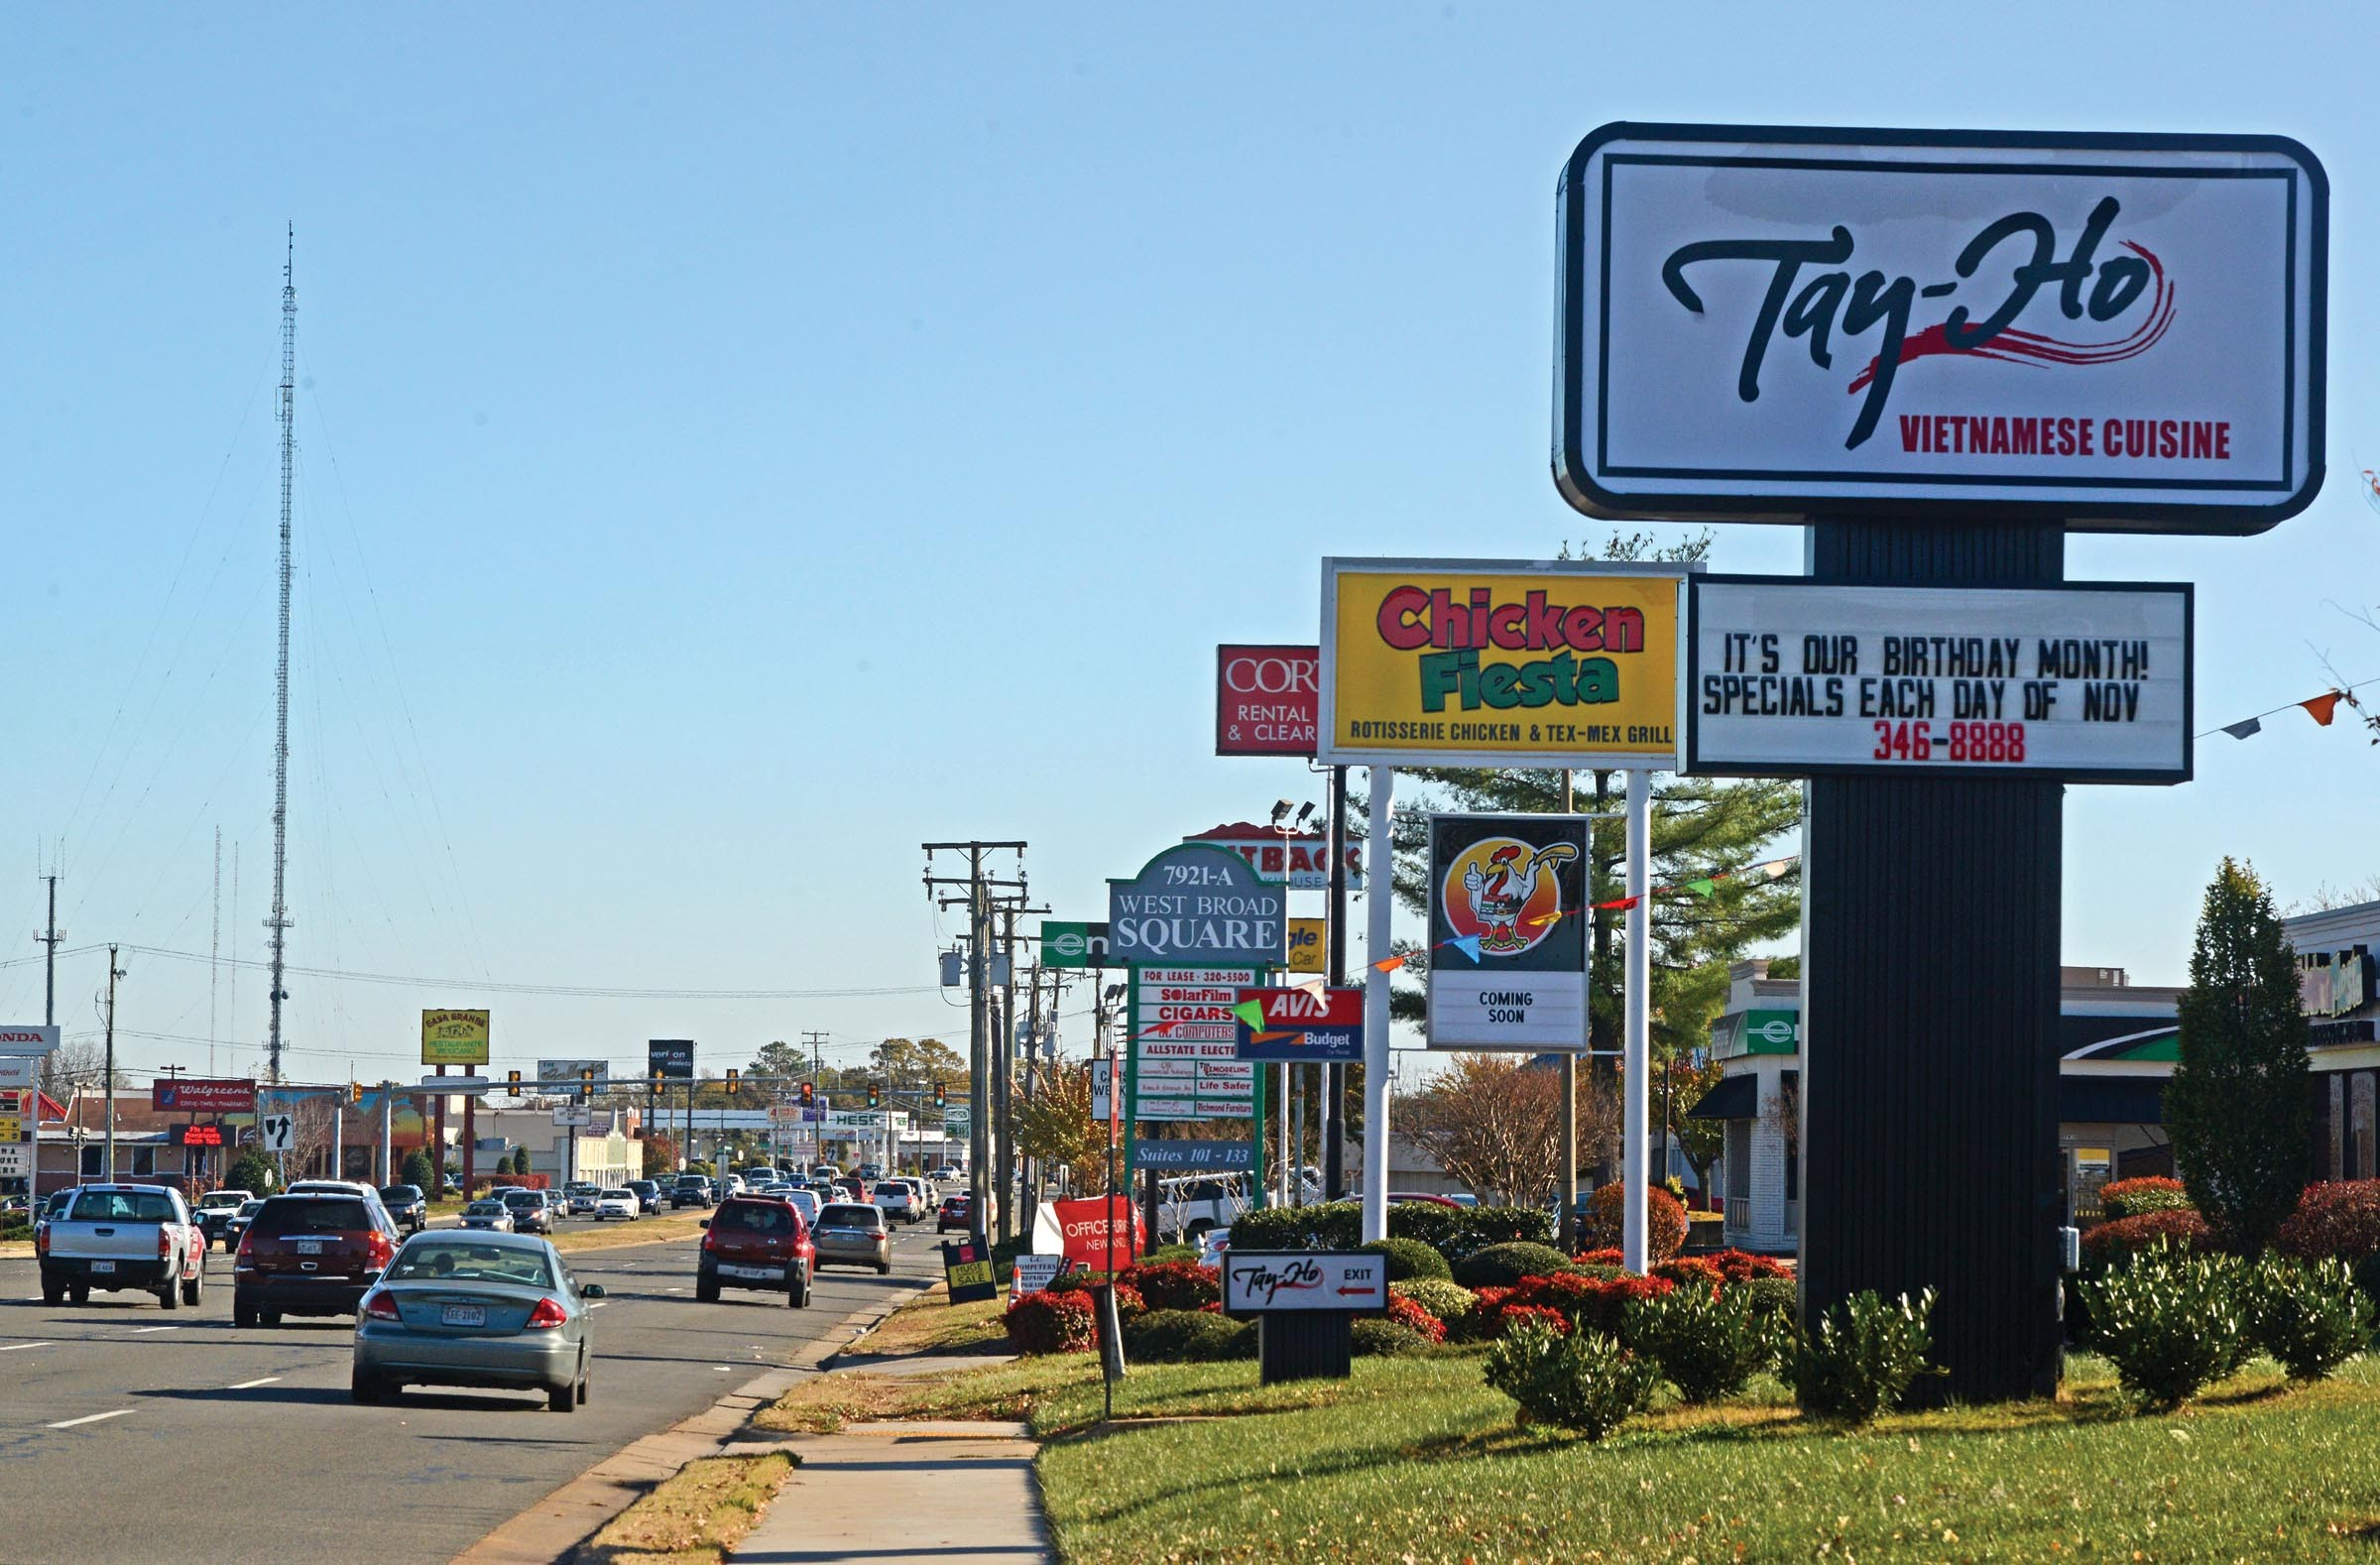 The western part of the county bustles with retail, such as this stretch along West Broad Street near Hungary Spring Road. Diners at county restaurants also will face a newly passed meals tax. - SCOTT ELMQUIST